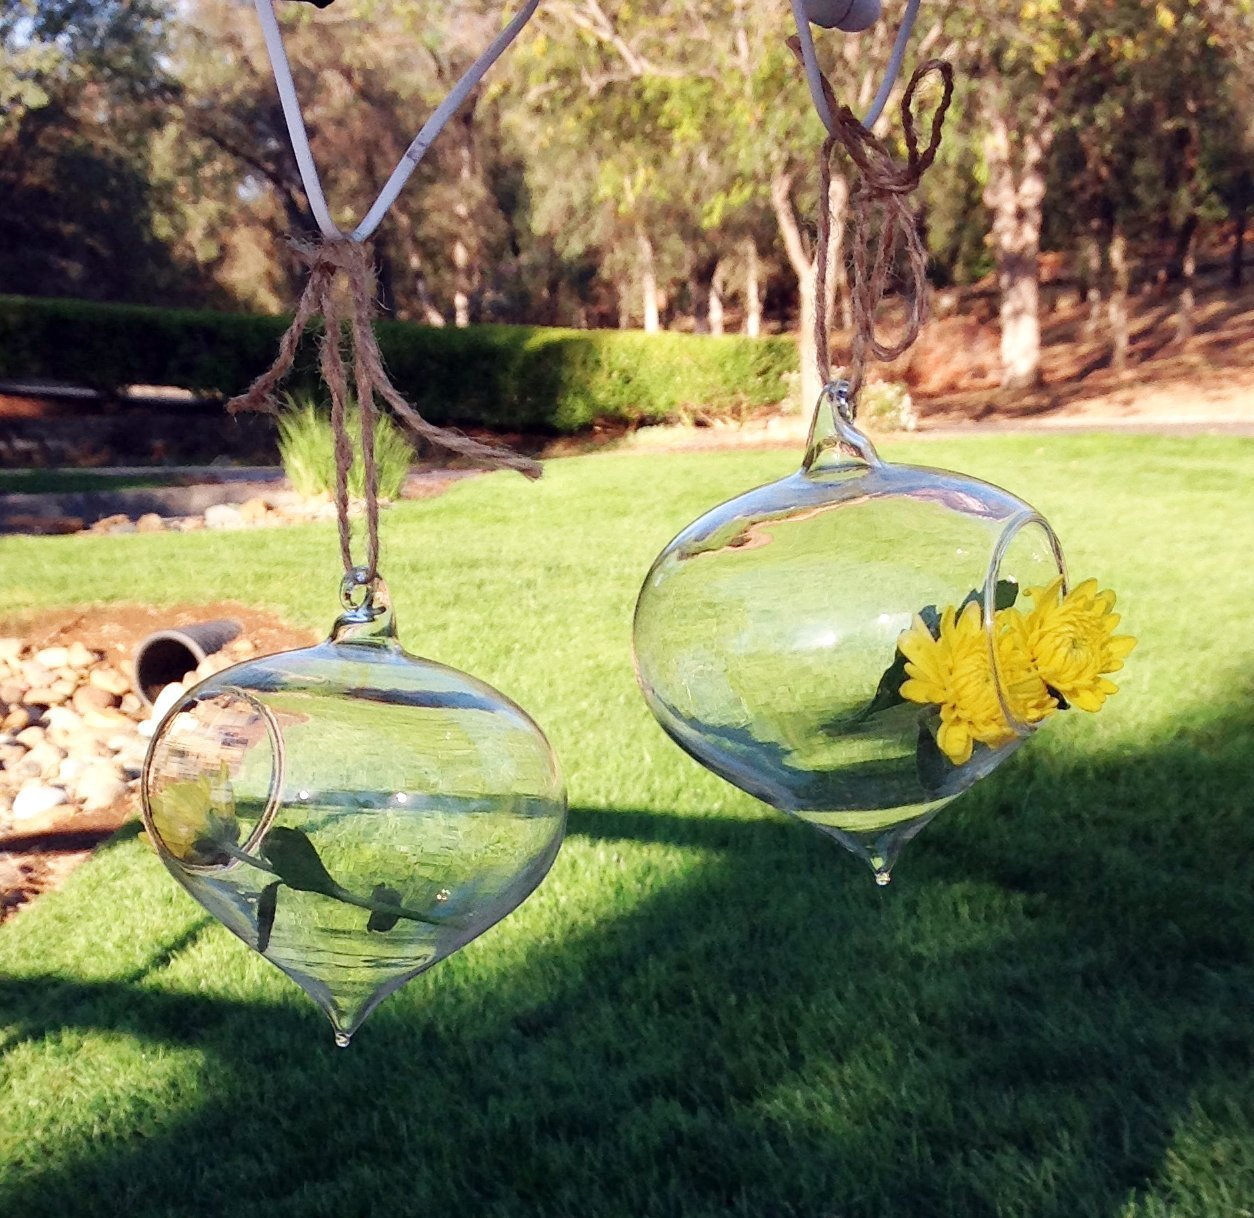 Set of 2 Delicate Turnip Shaped Glass Globes for Hydroculture or Fresh Cut Flowers